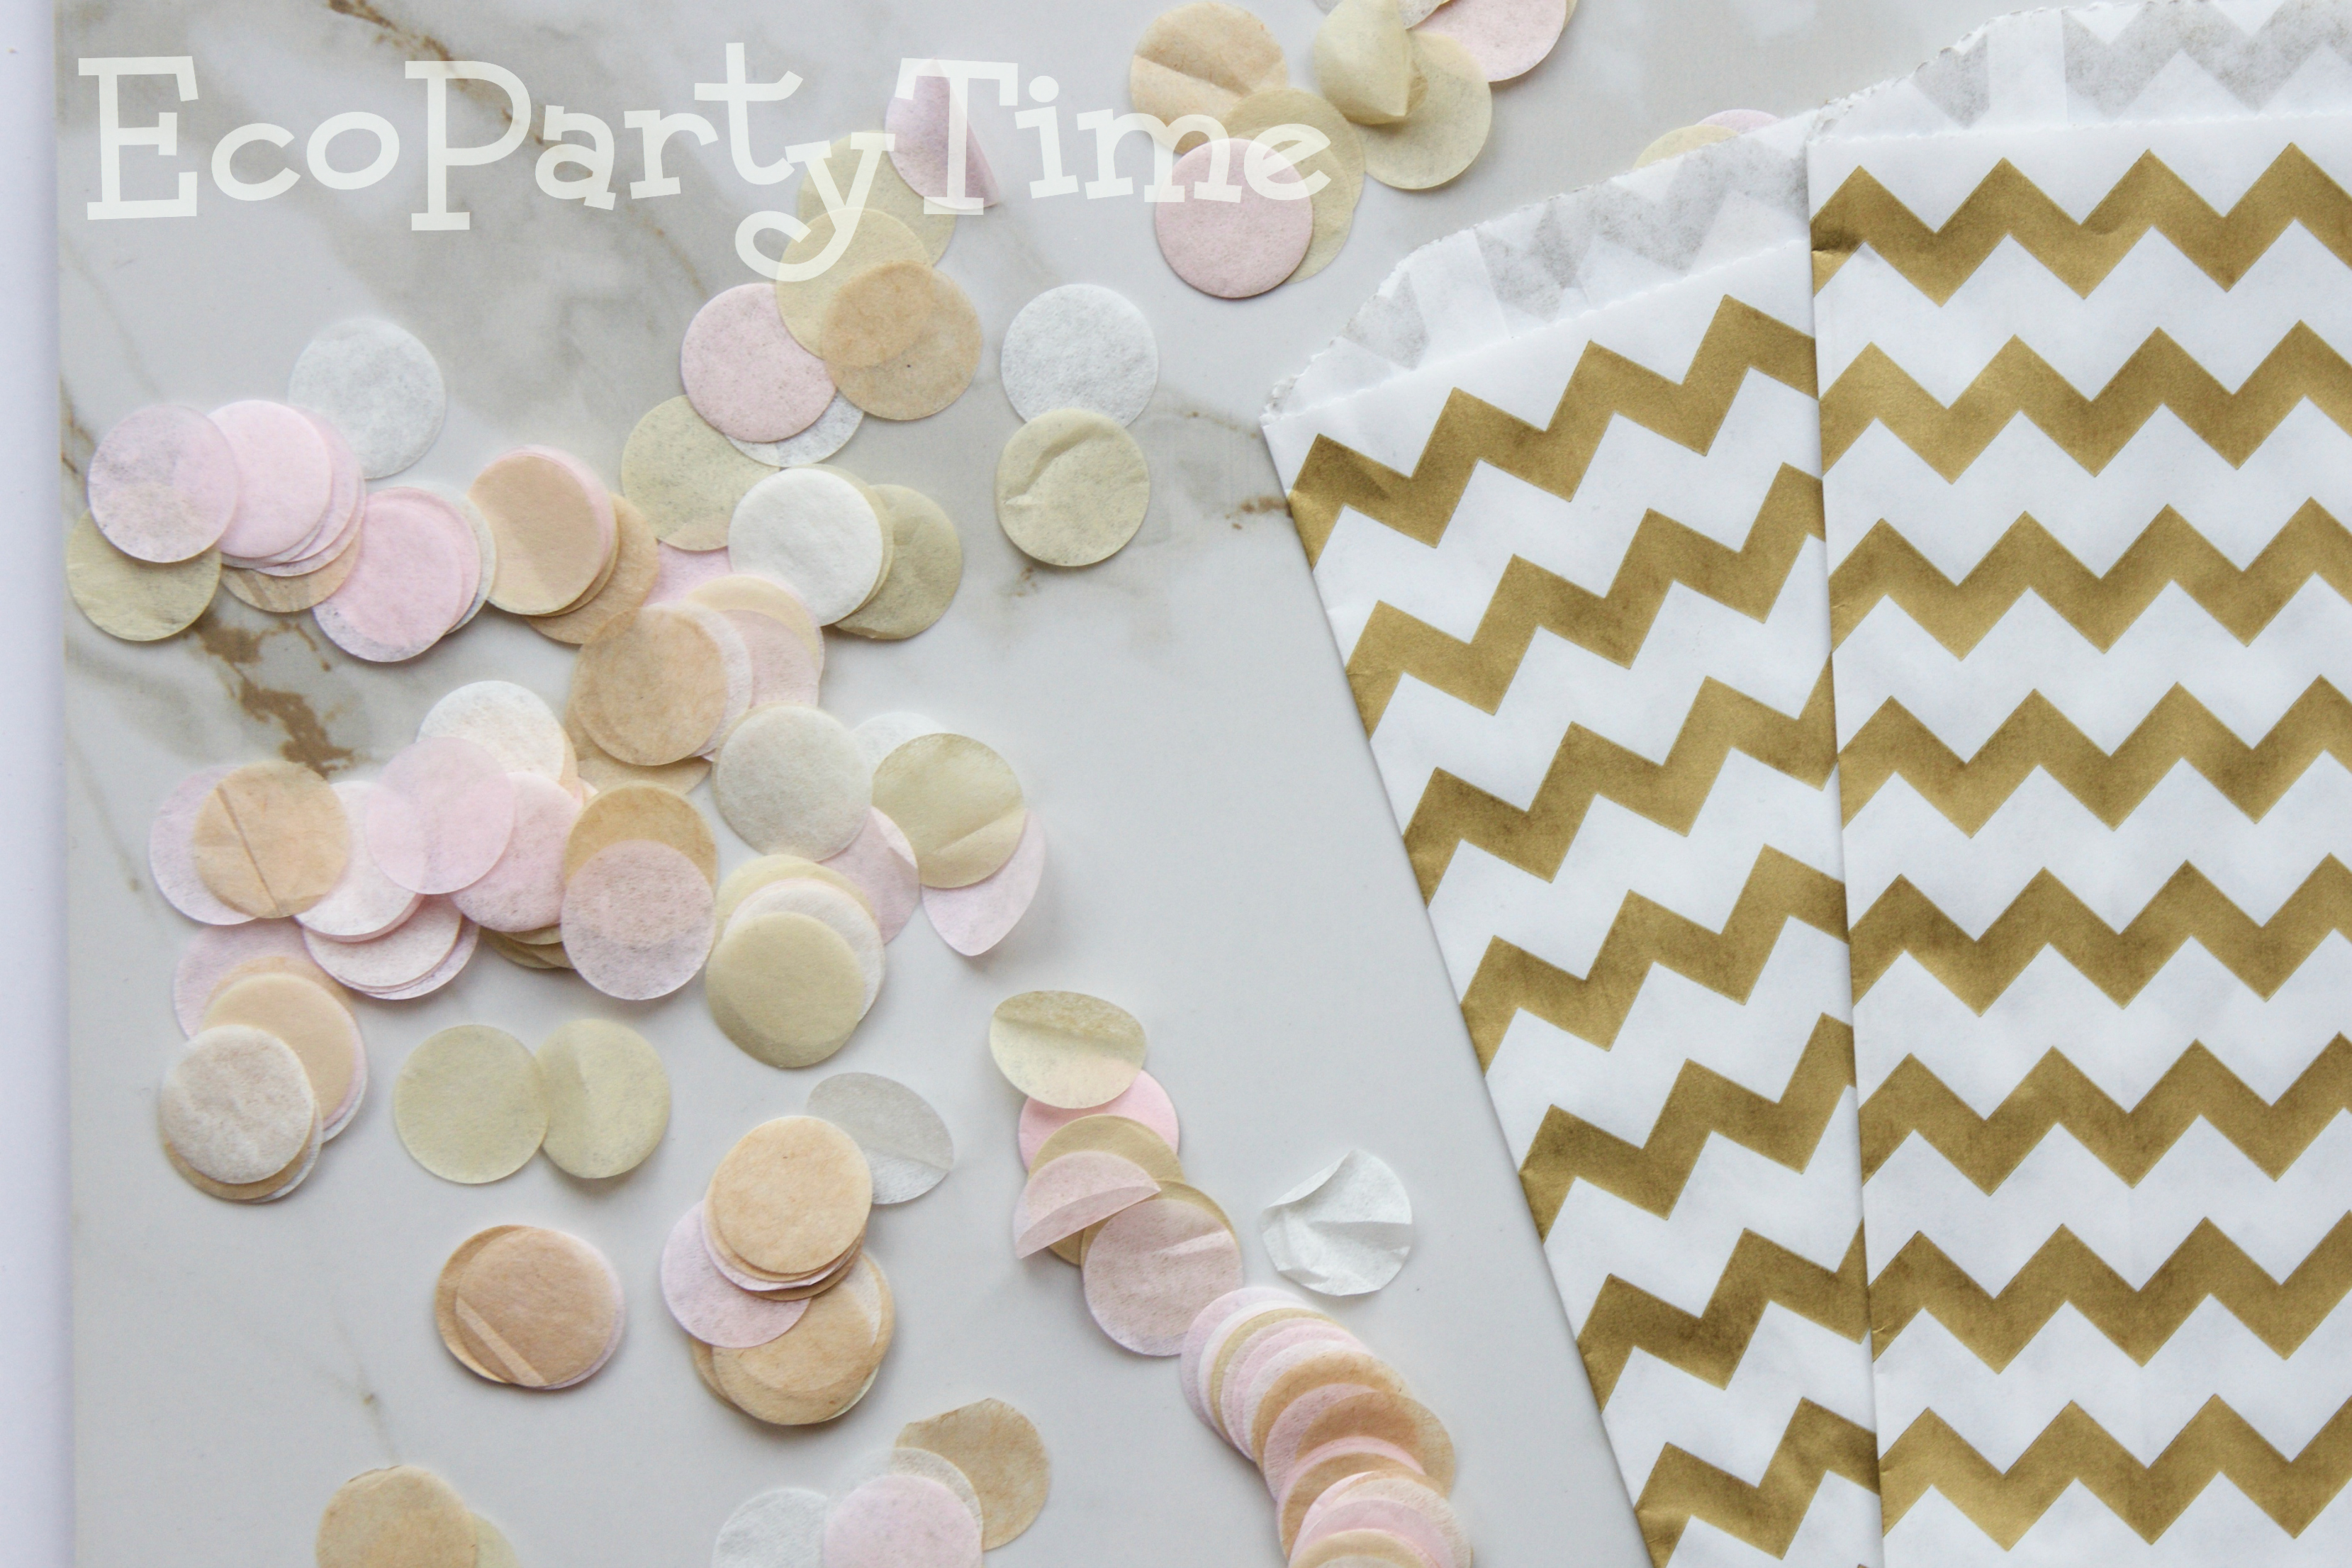 Ecopartytime: Eco-Friendly Color Themed Party